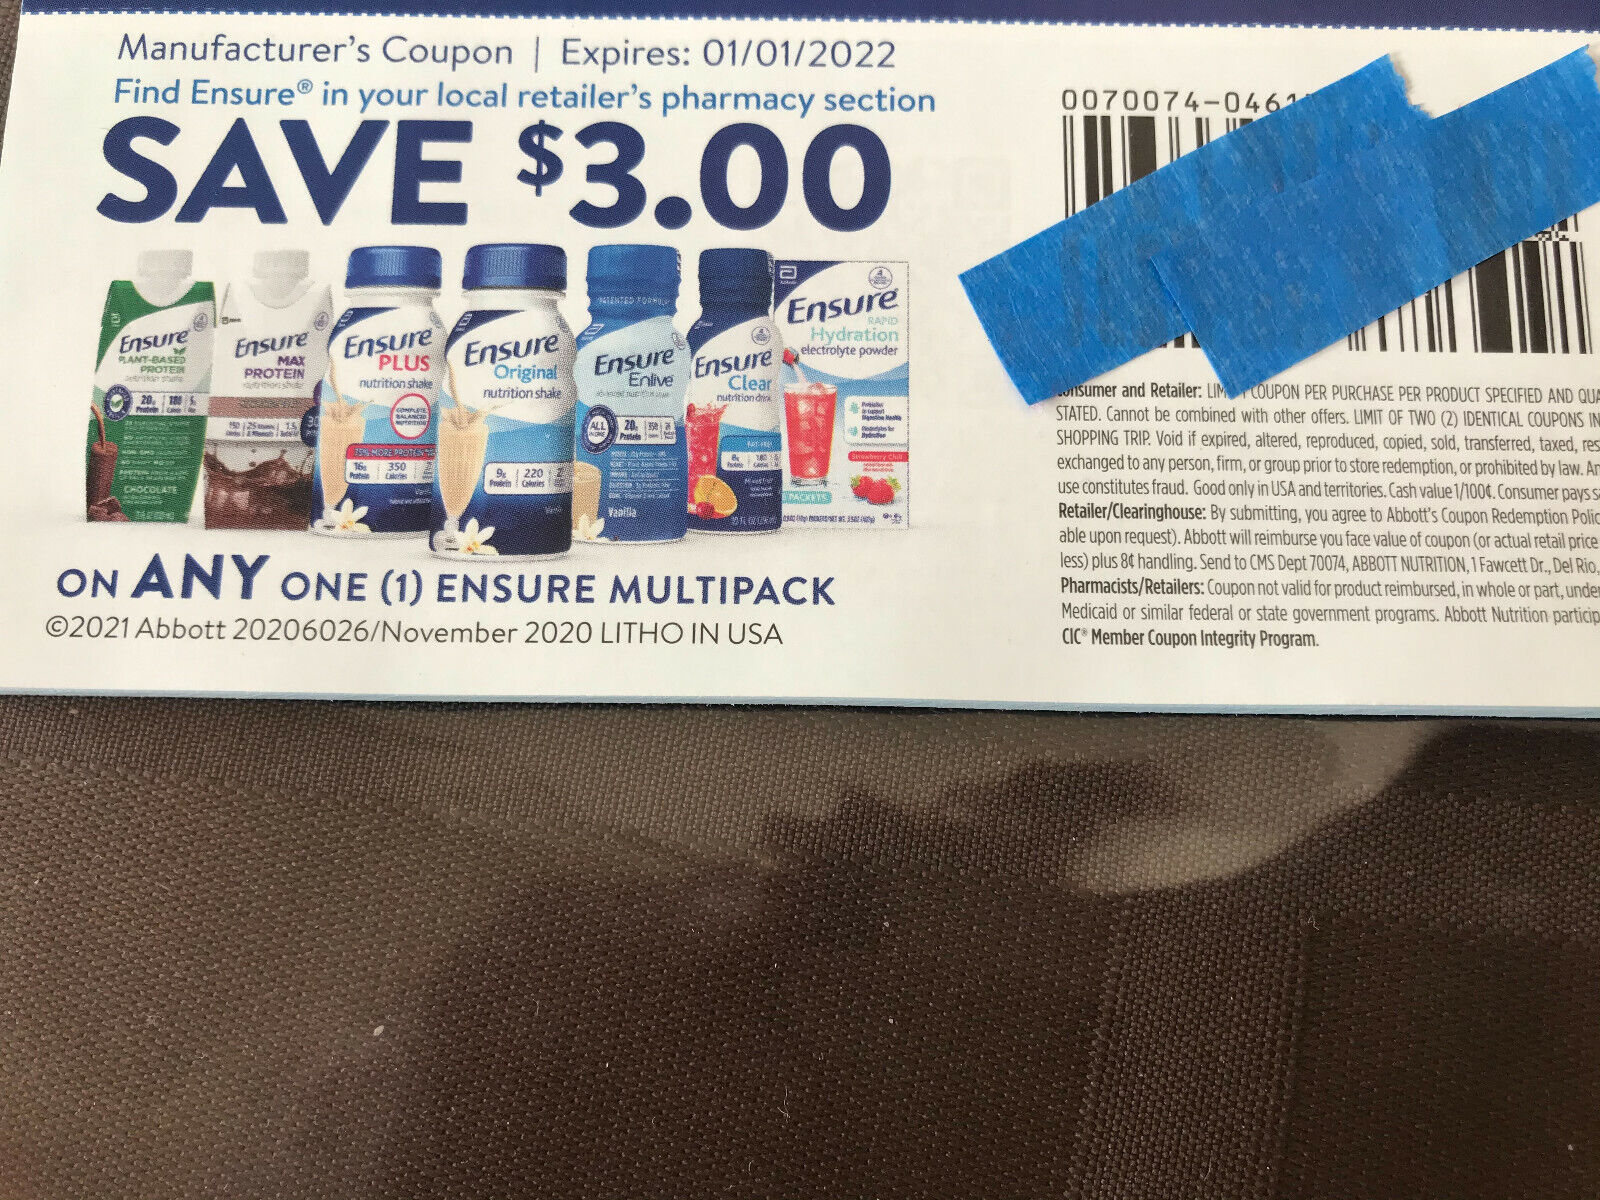 3/1 Ensure Multipack - 10 Coupons - Save 30 - Expiration1/1/2022 - $7.50